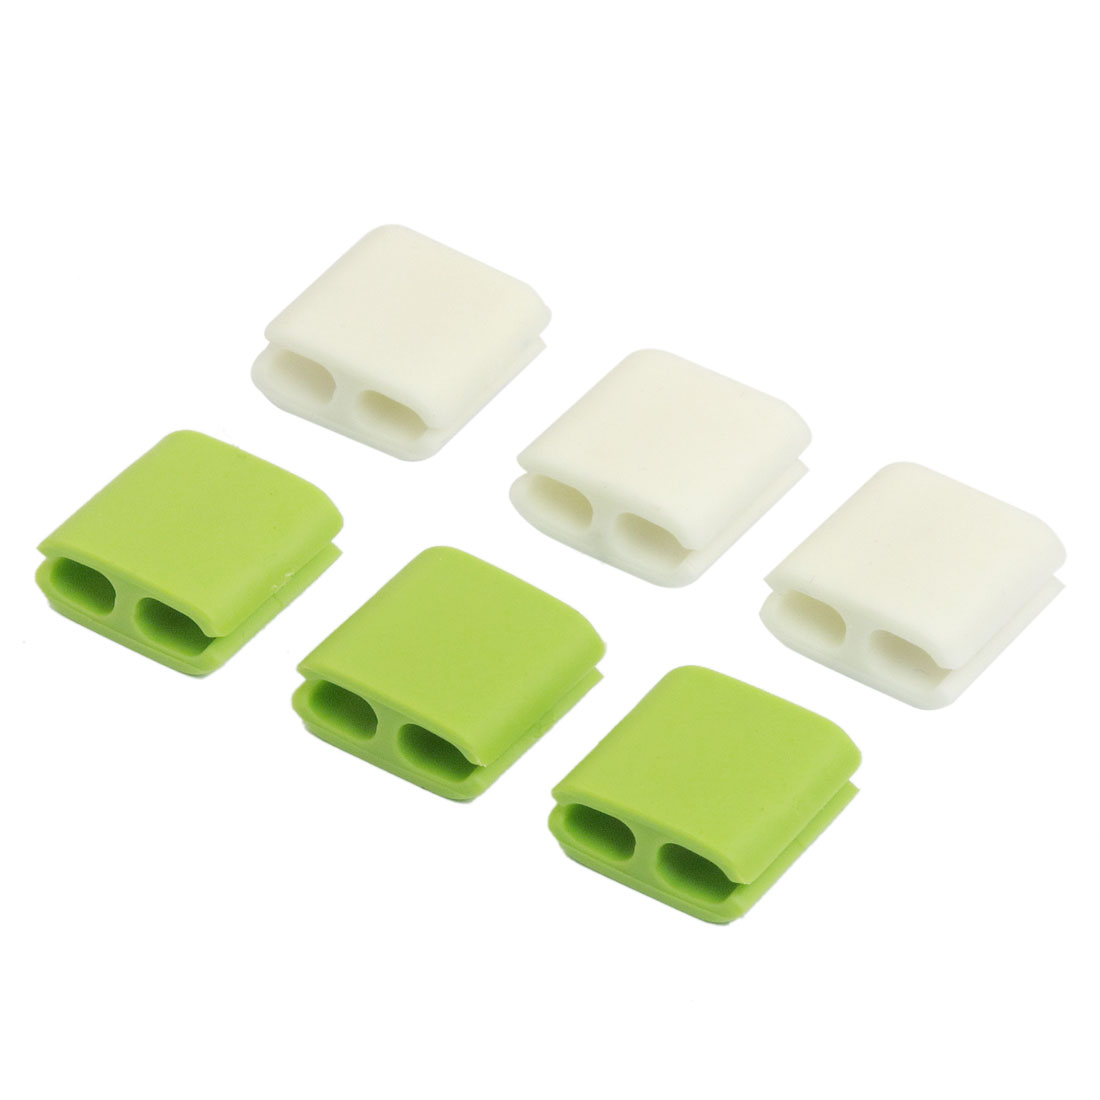 6 Pcs Rubber Wire Cord Cable Clips Holder Organizer White Green